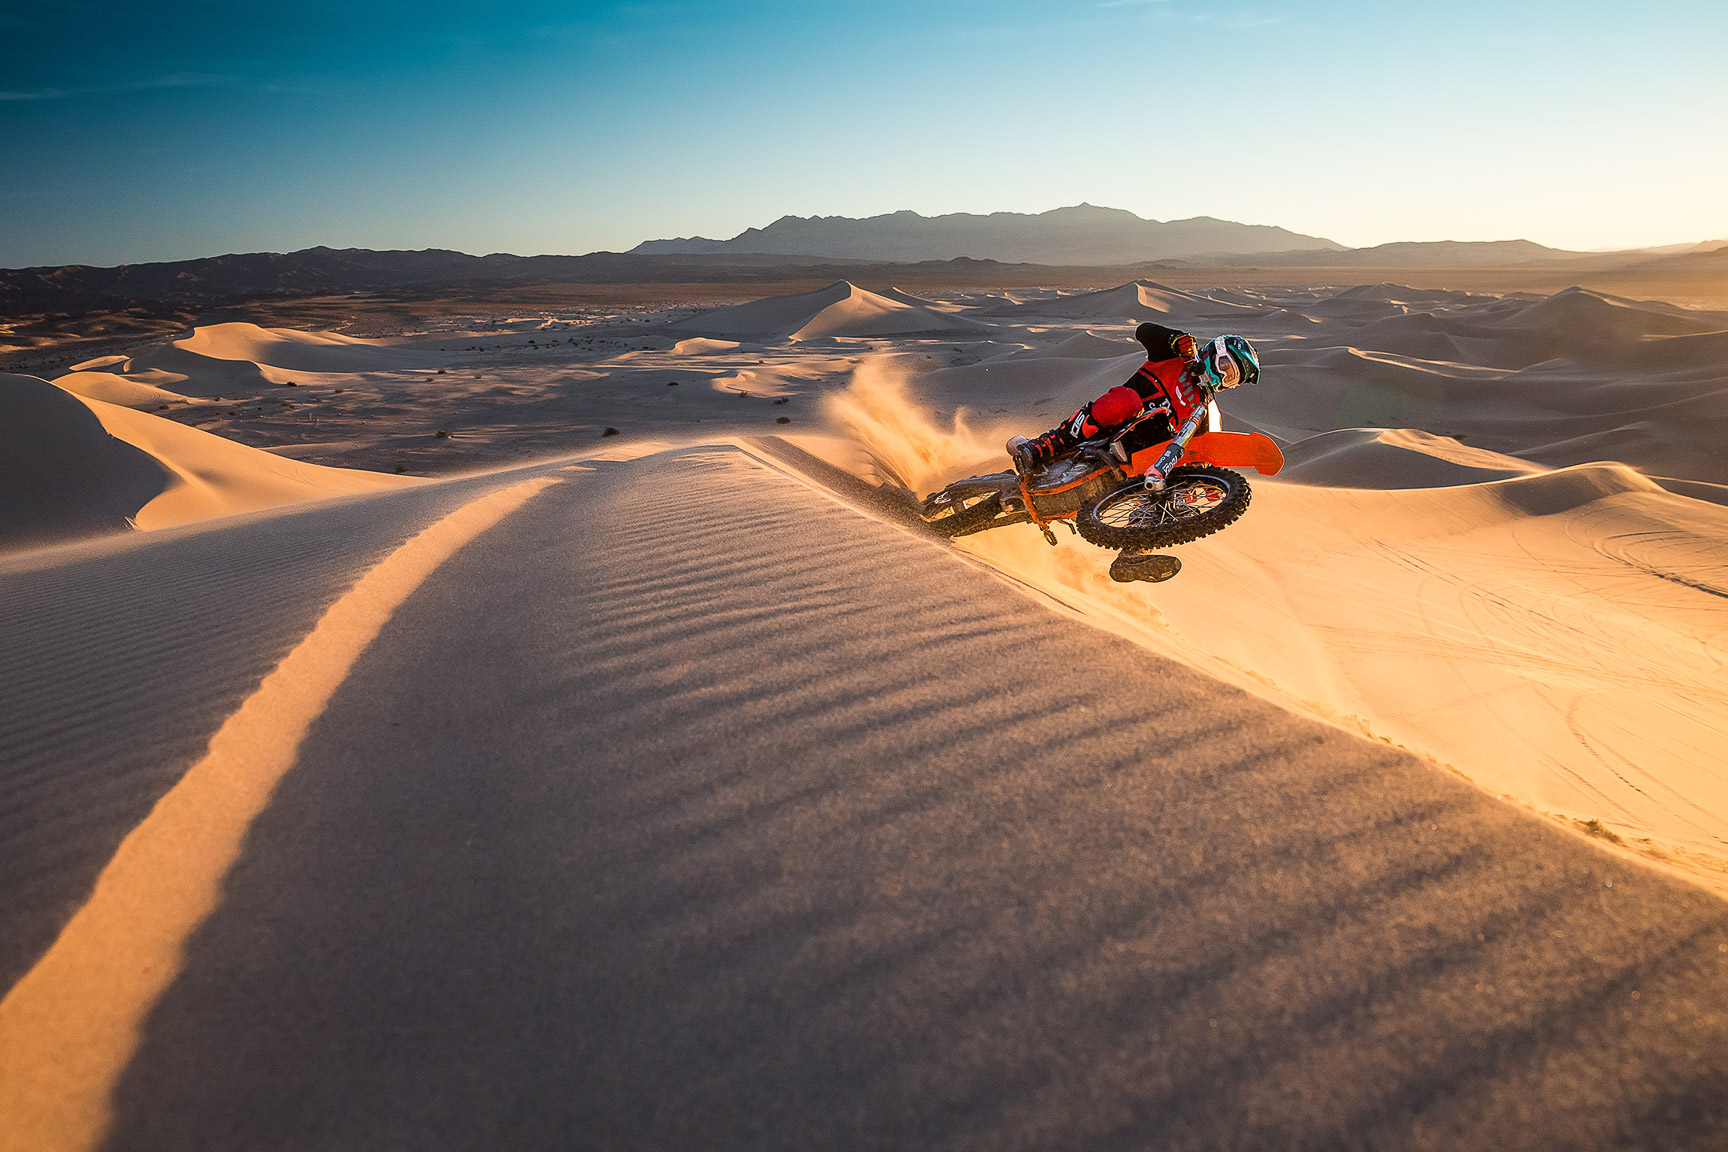 Tom Parsons, Dumont Dunes, California